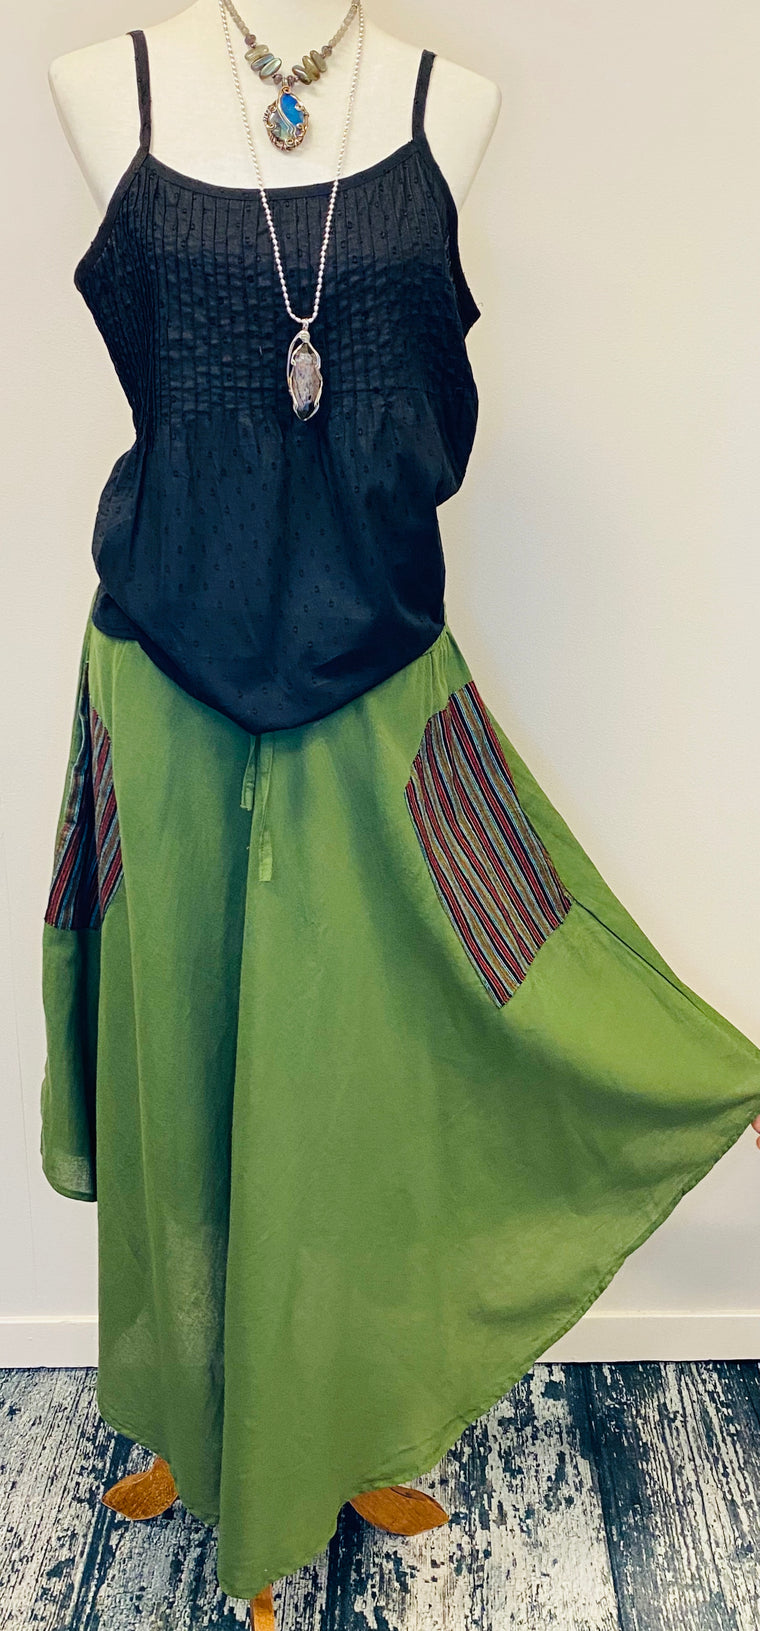 100% Hemp Drawstring Skirt with Nepali Fabric side Pockets from Nepal